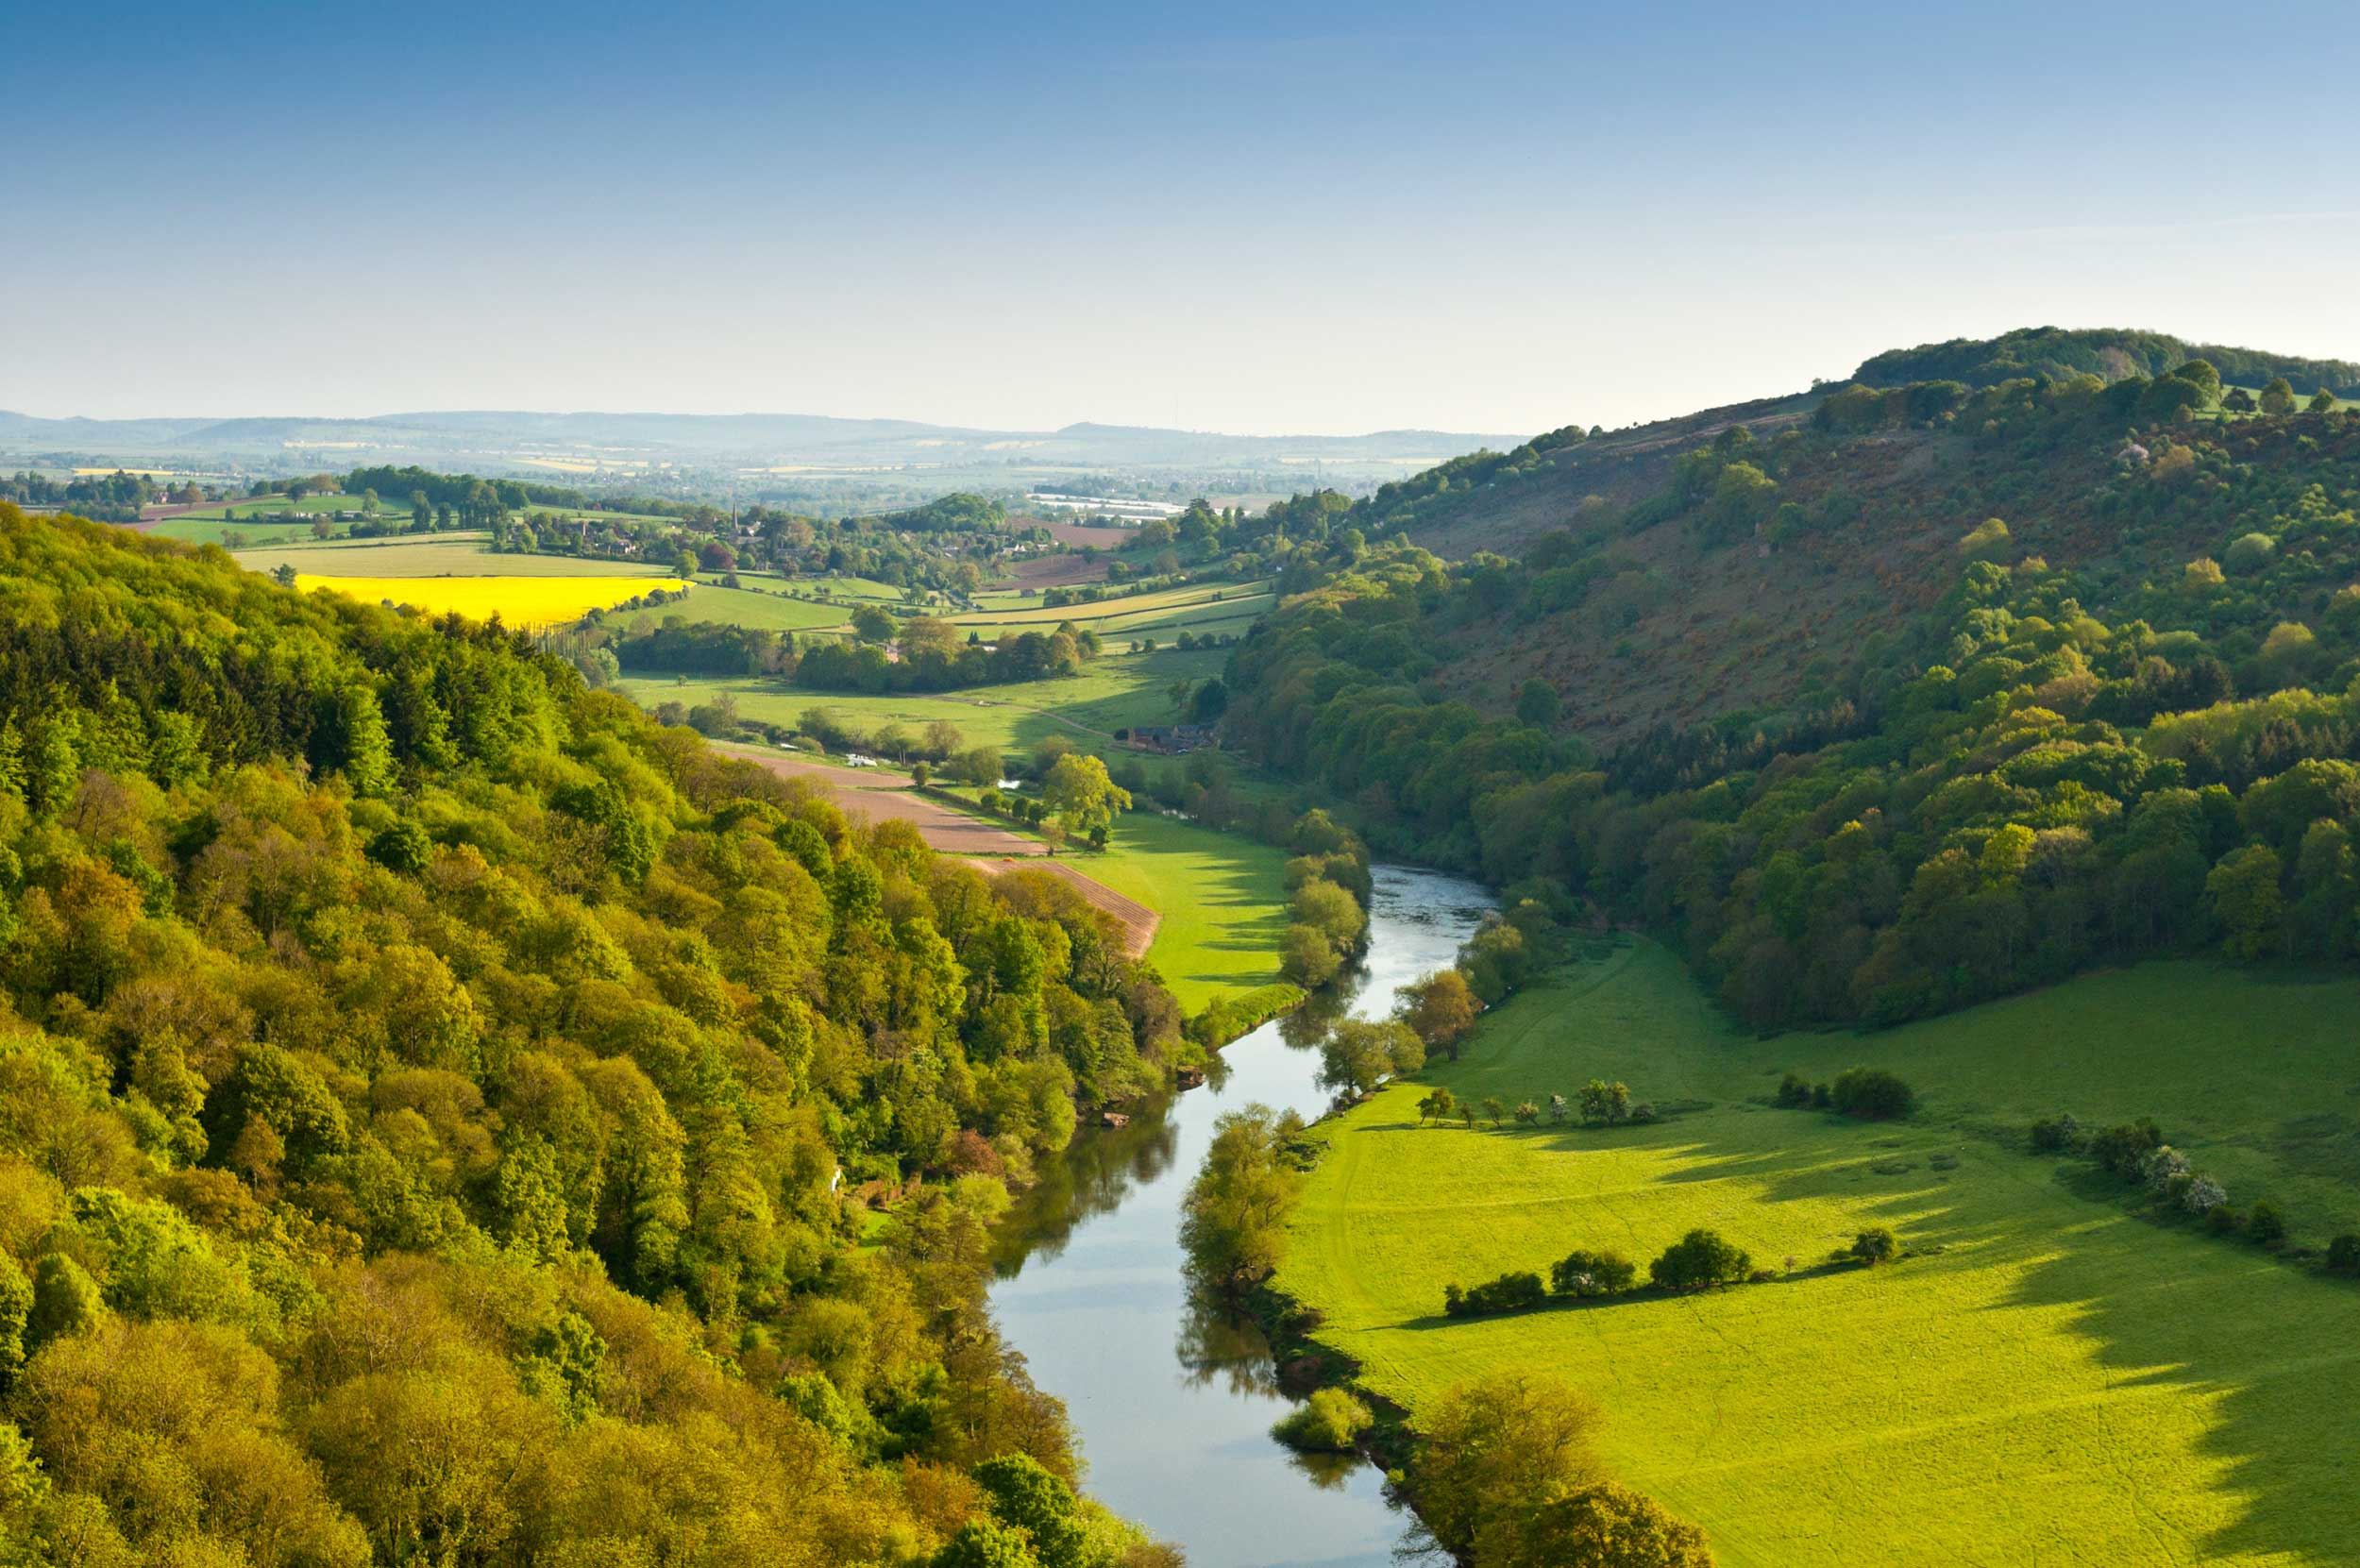 The River Wye from Symonds Yat, Herefordshire, England  (Matthew Dixon/Shutterstock)